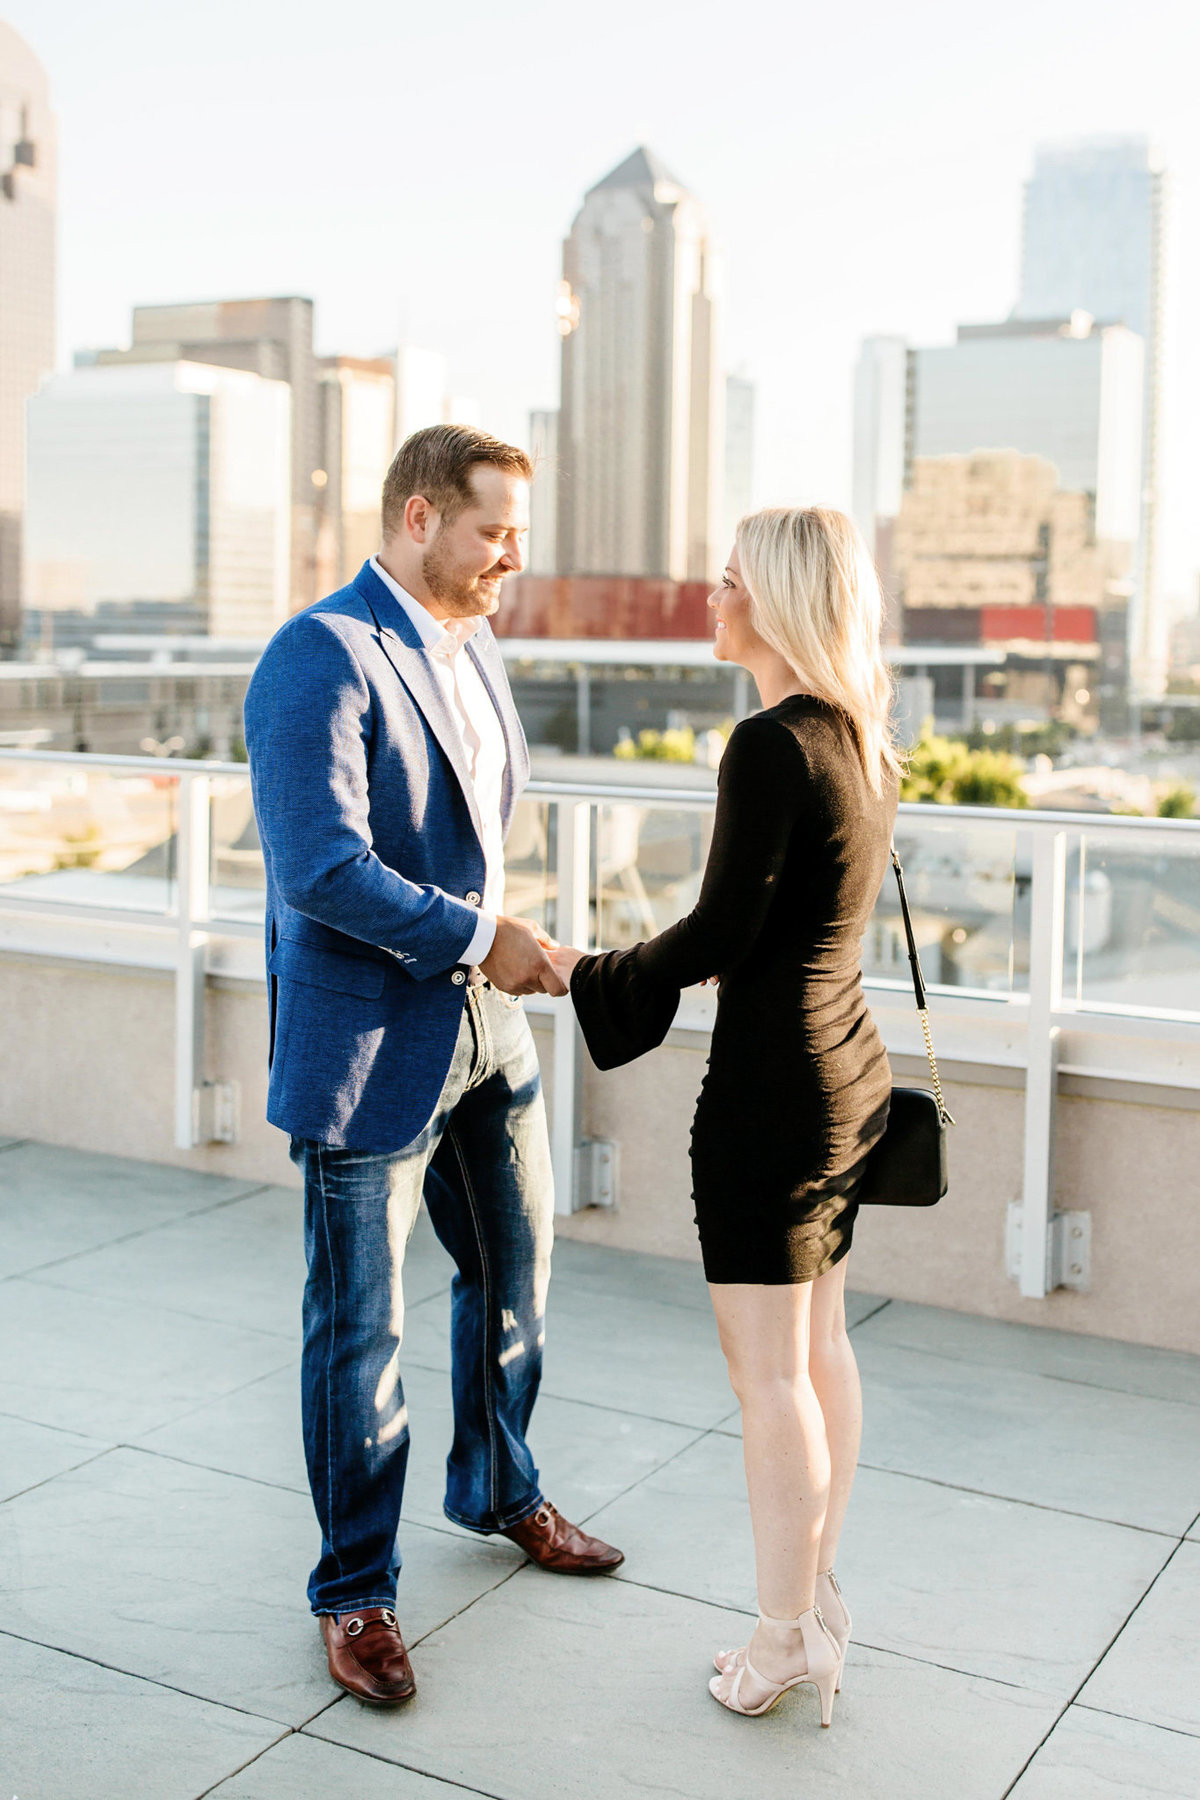 Eric & Megan - Downtown Dallas Rooftop Proposal & Engagement Session-23